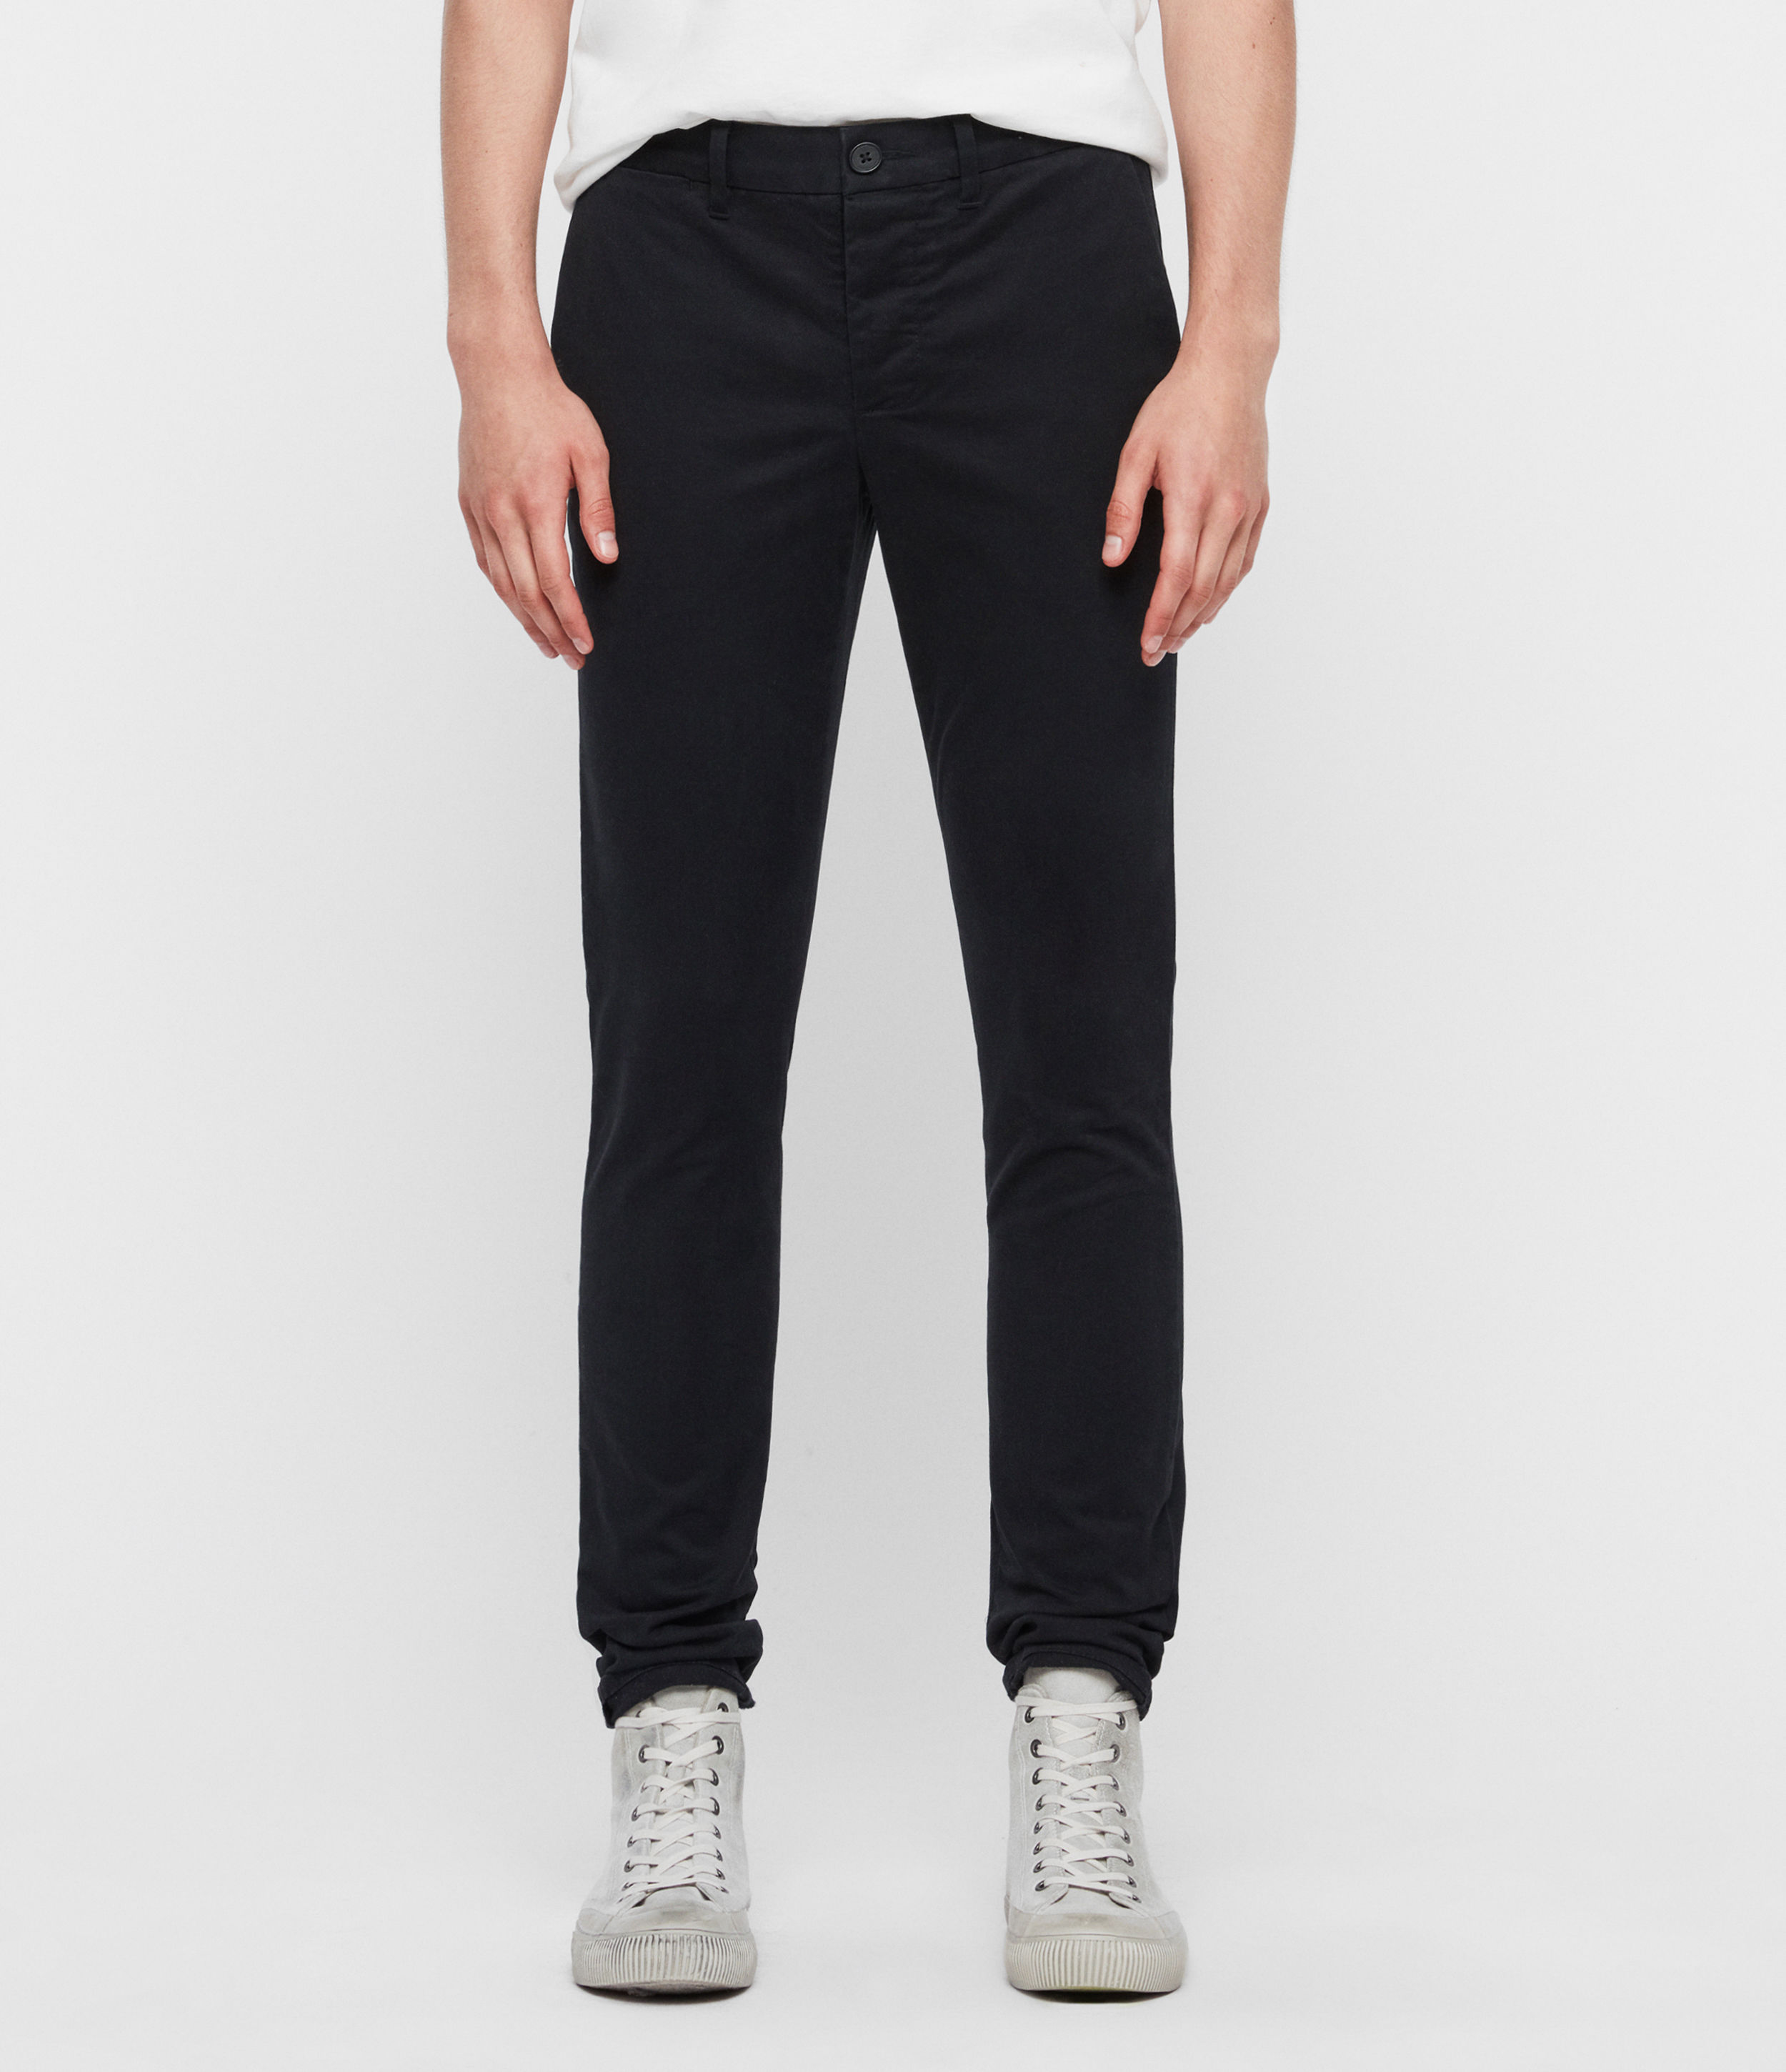 AllSaints Mens Black Cotton Park Chinos, Size: 31